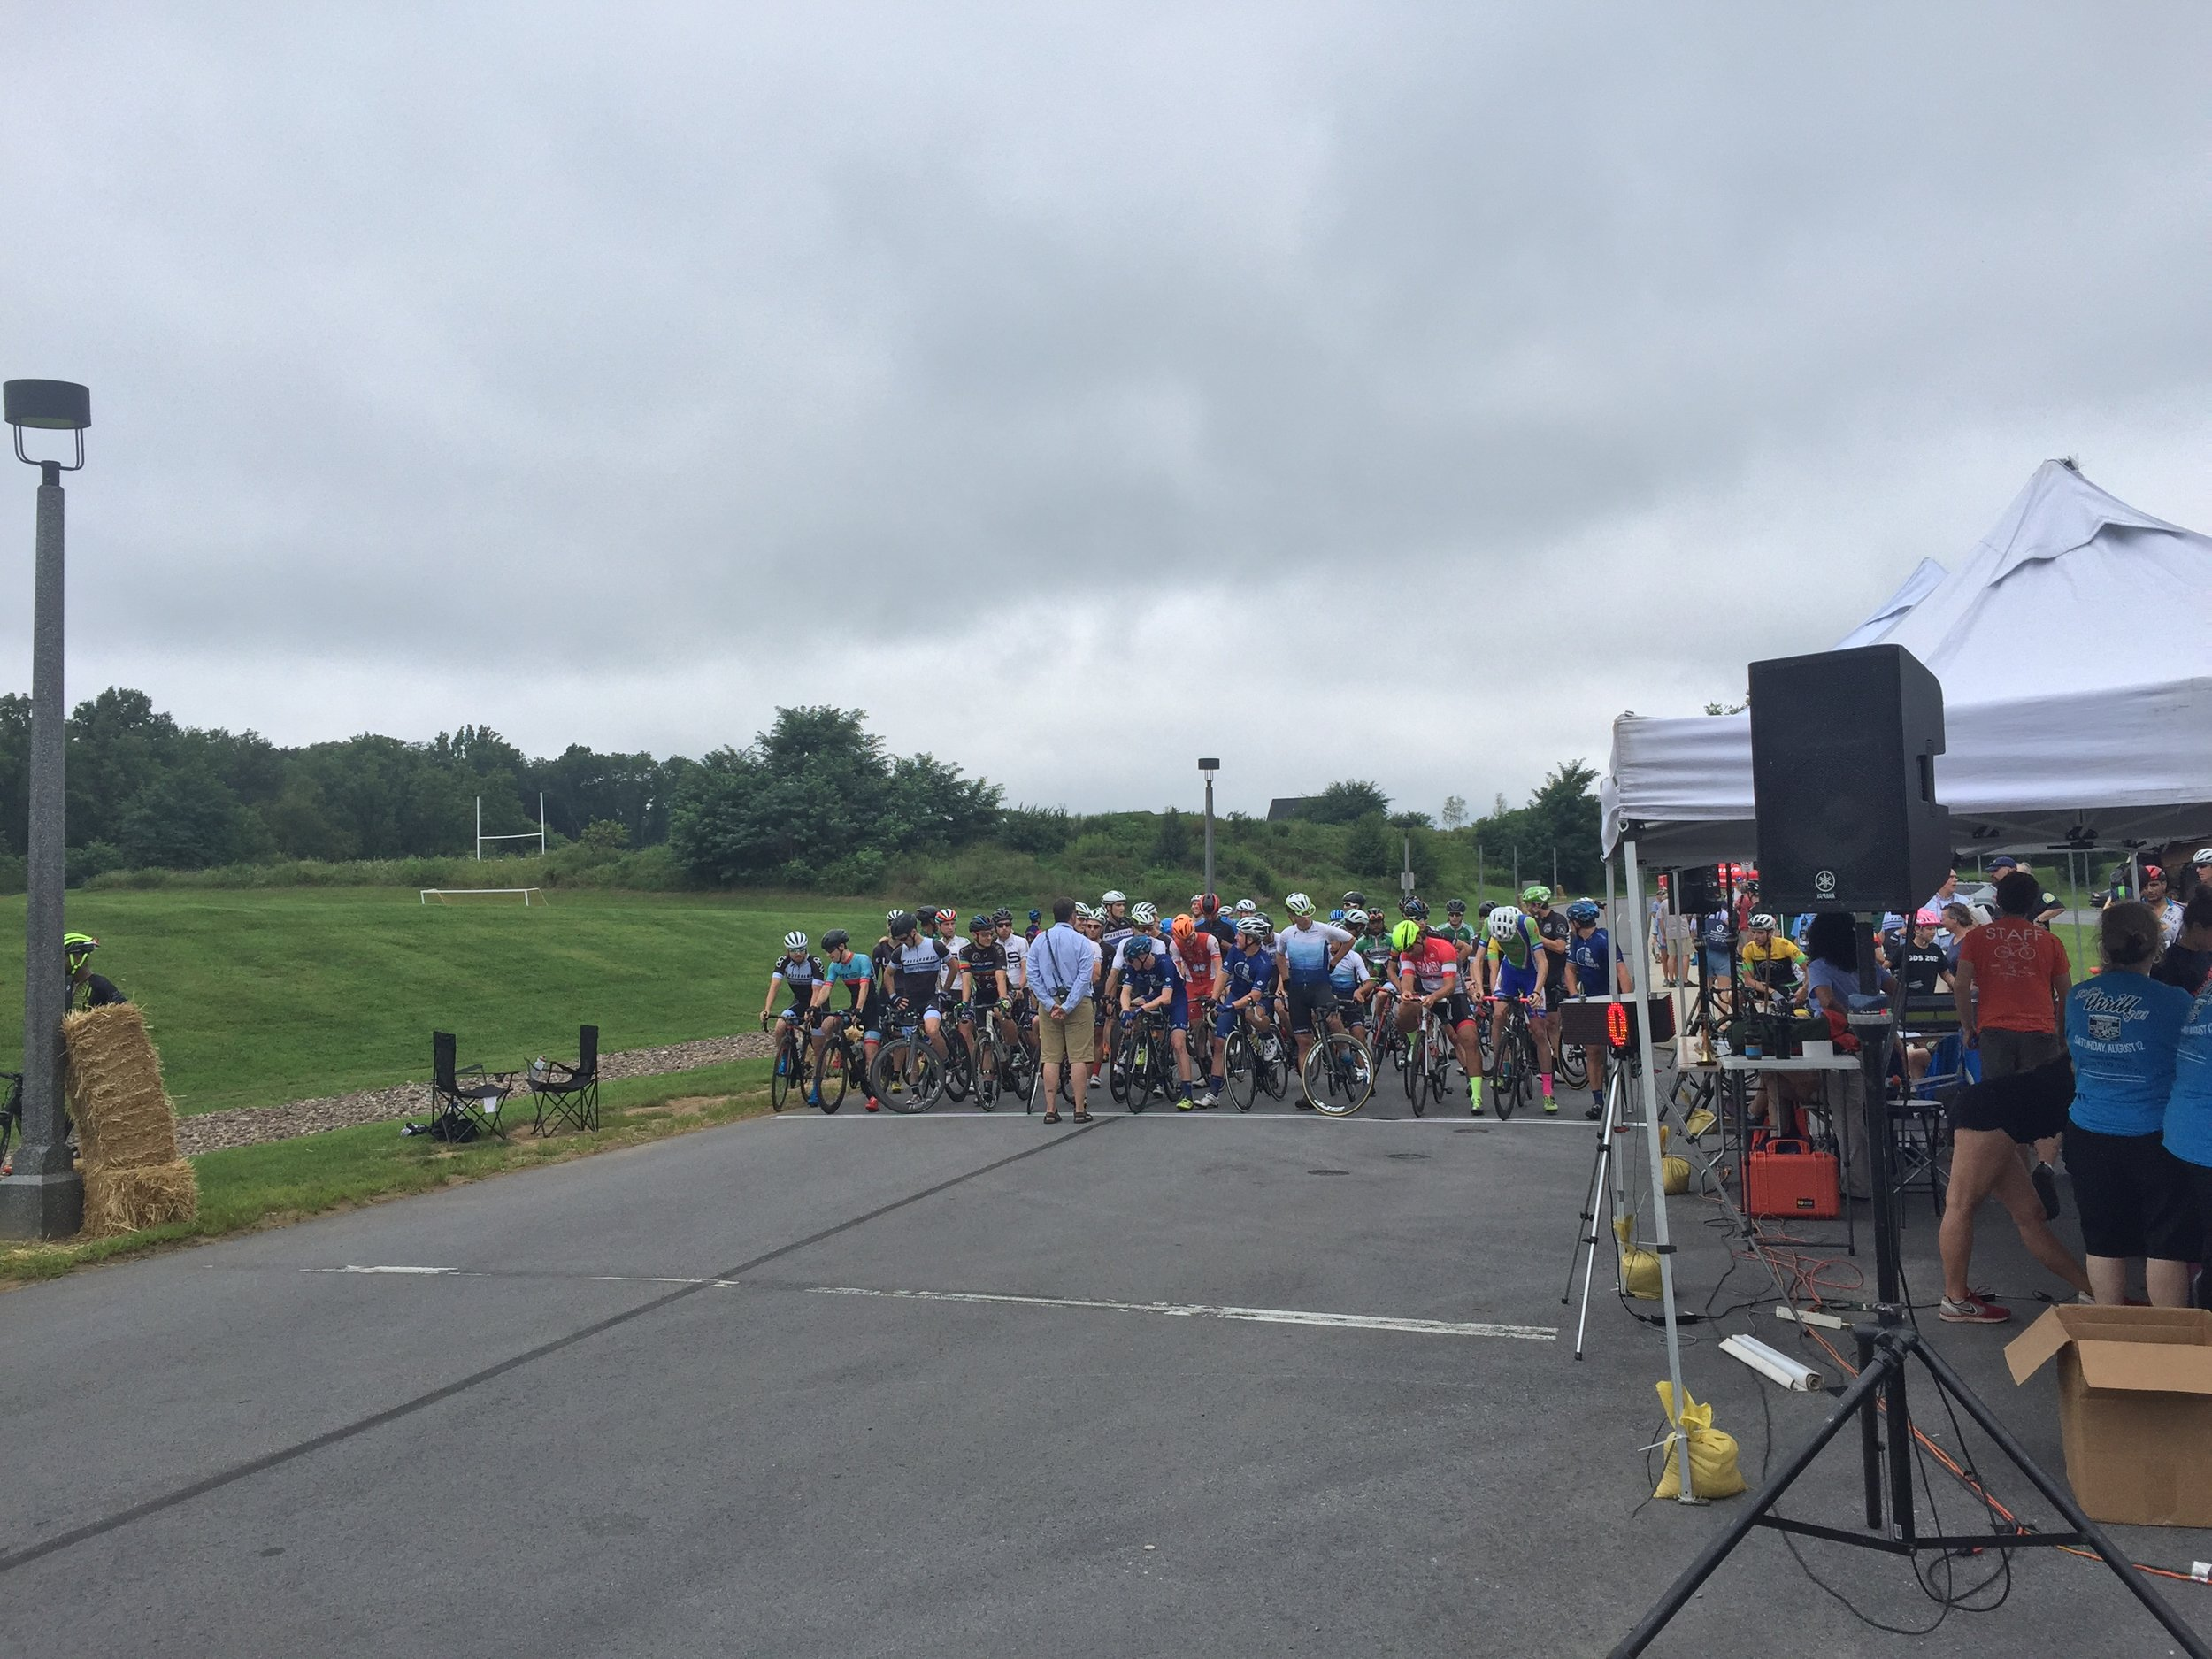 The starting line at the West Chester Rustin High School for the Benchmark Twilight Cycling Classic qualifier. This was the mid-point of the downhill straight-away.